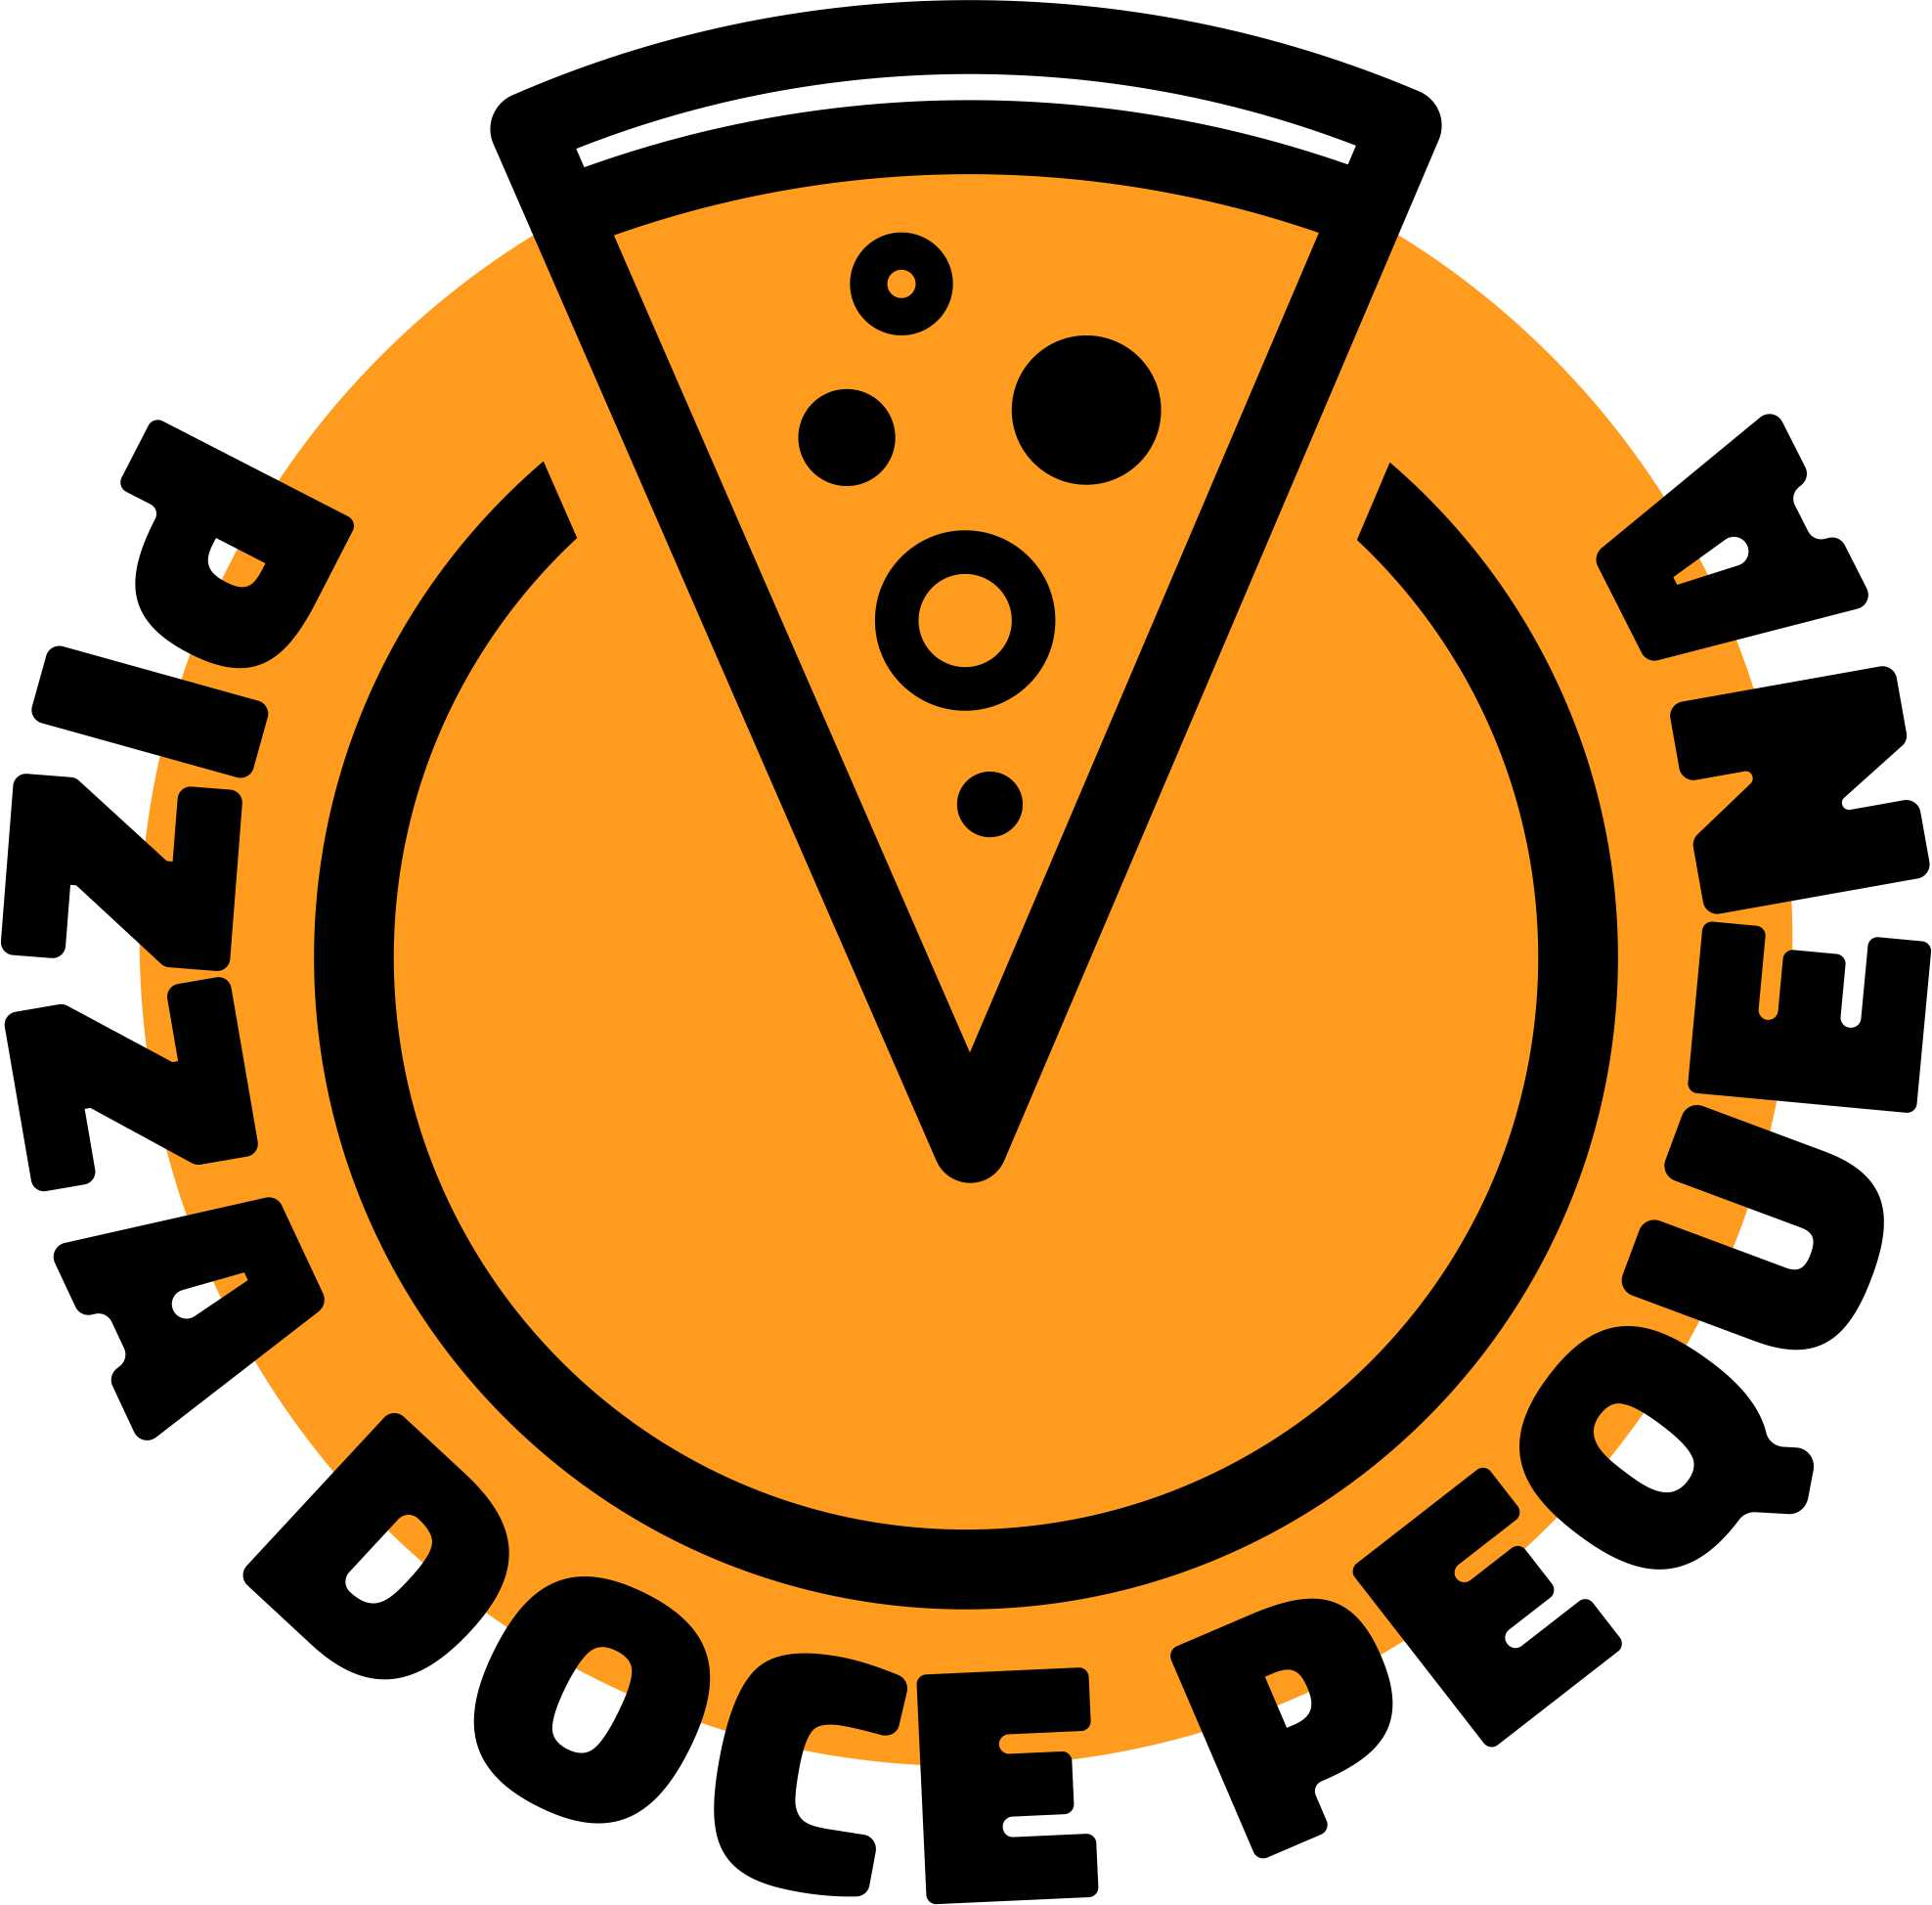 Pizza Doce Pequena